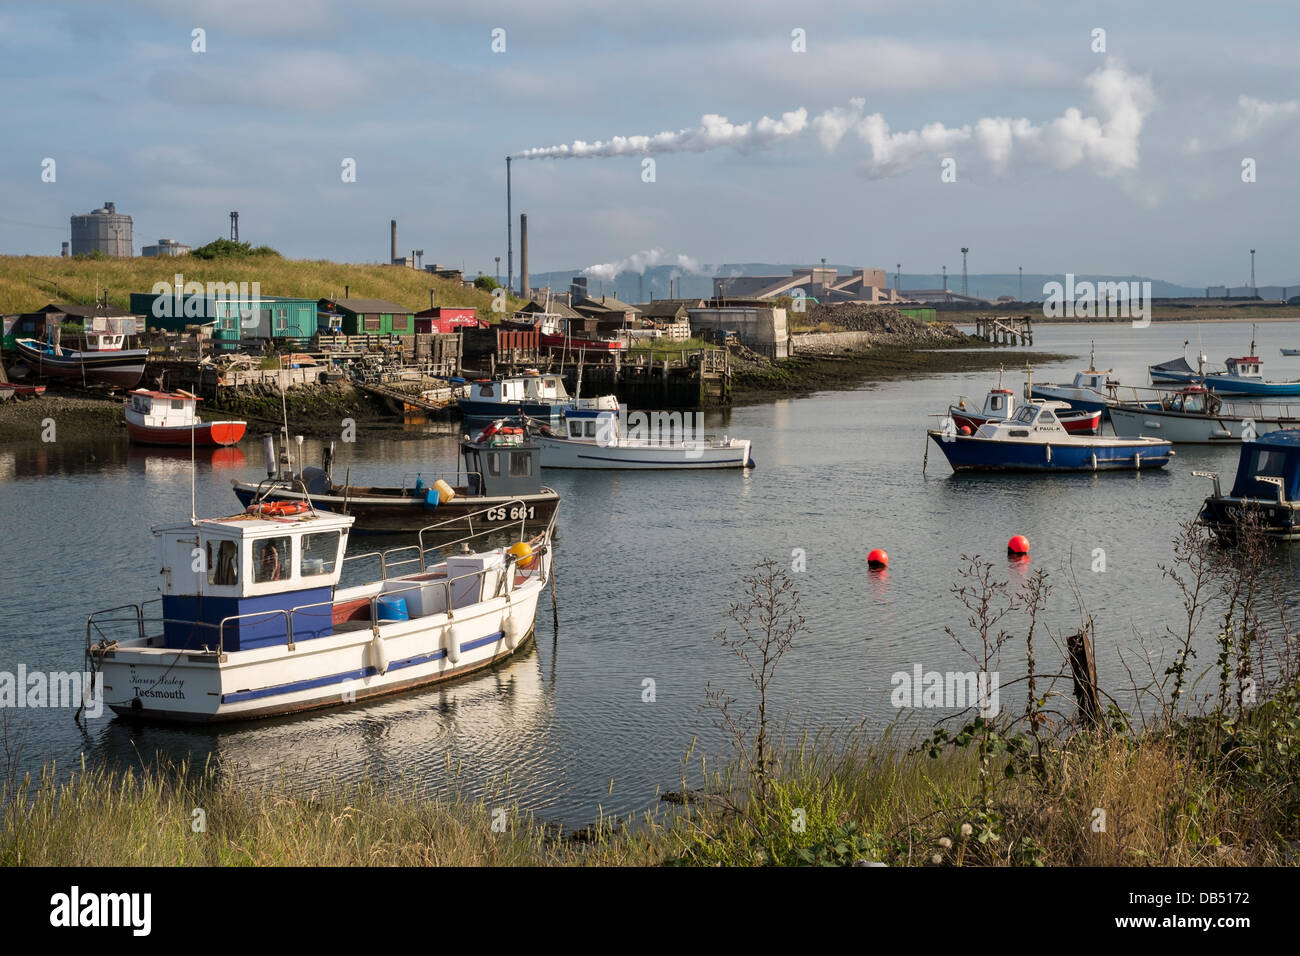 Paddy's Hole with Redcar steel works in the background - Stock Image